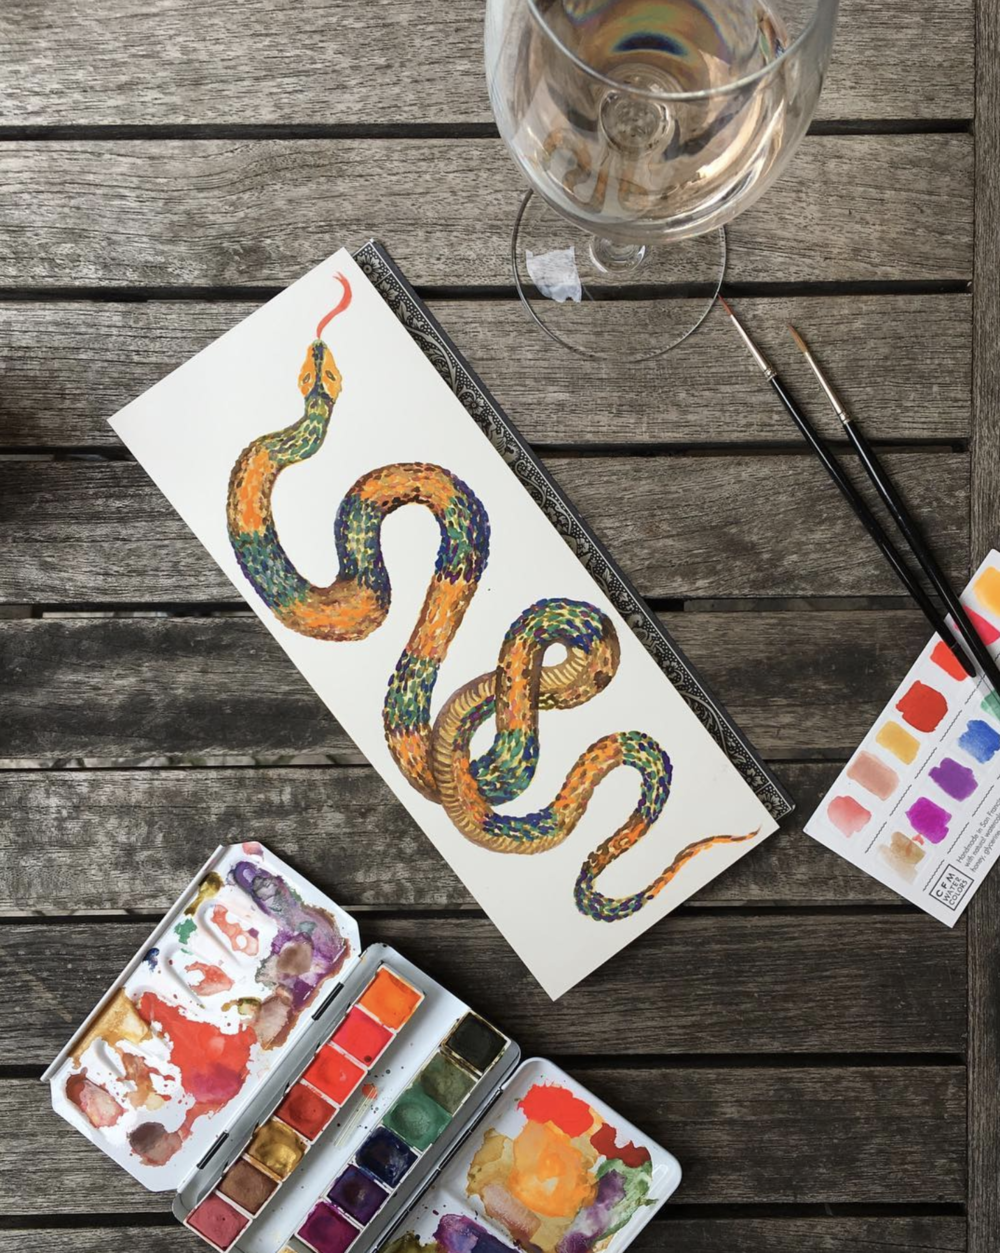 Source . Paulina is an amazingly talented Creative Director and I adore her recent watercolor works of snakes.